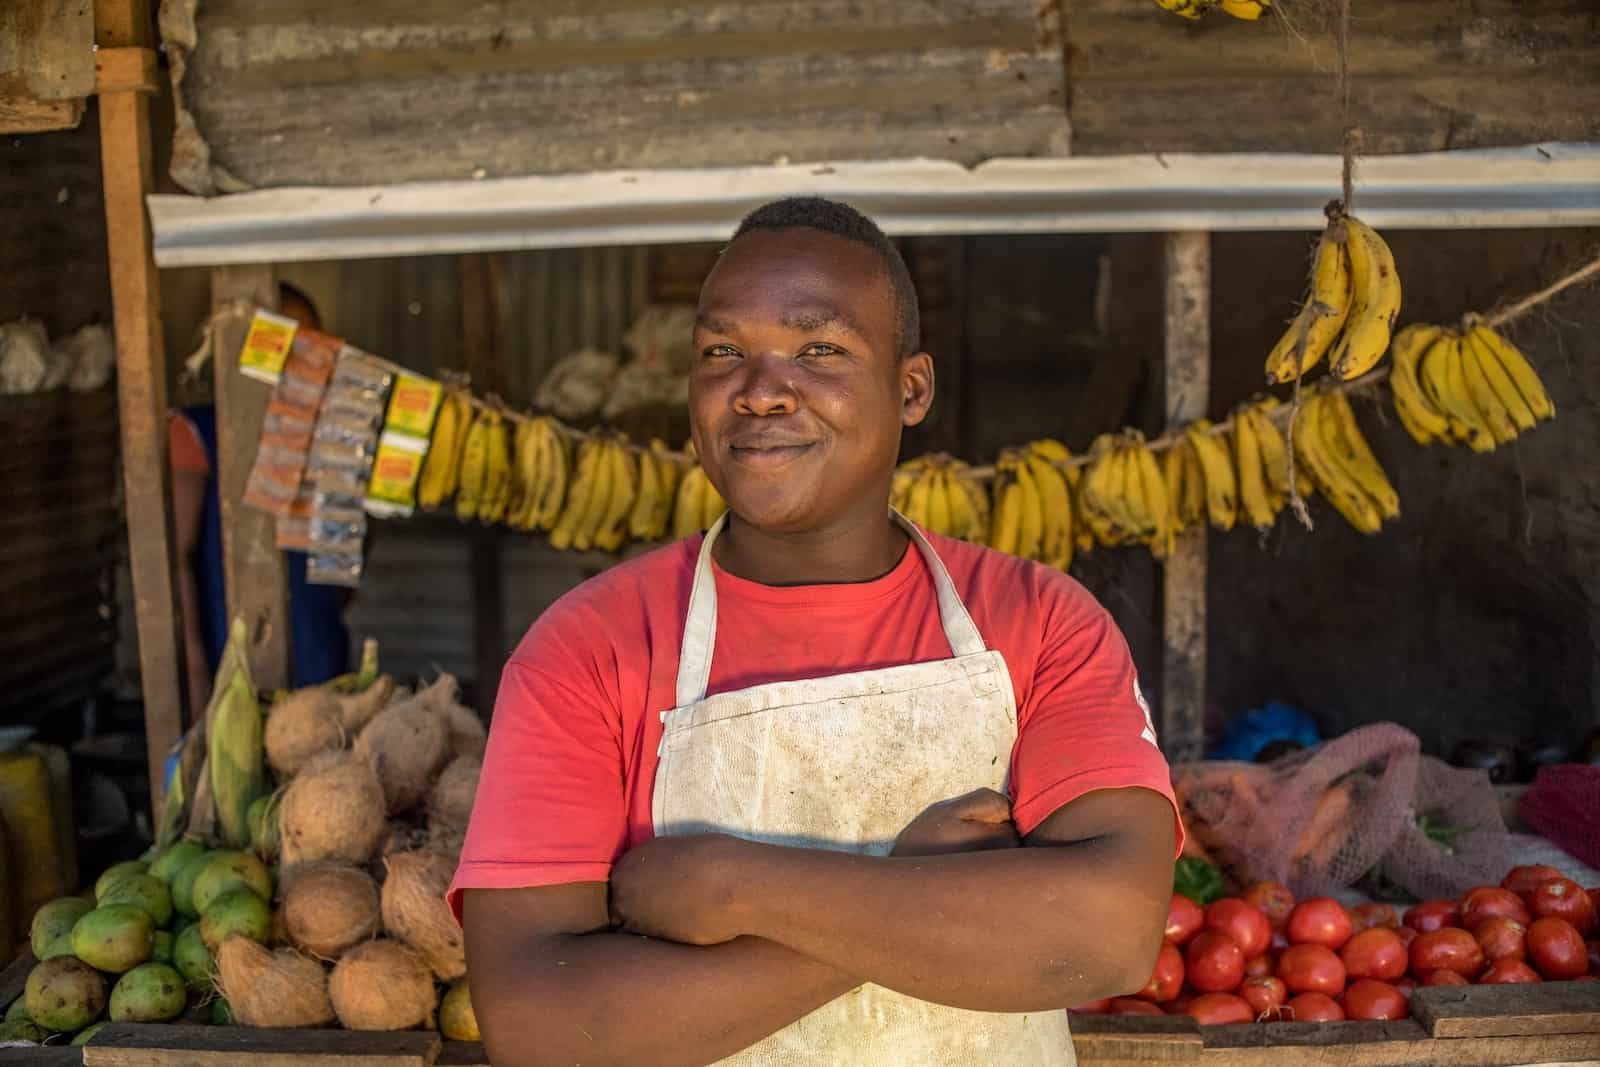 A Compassion graduate wearing a red T-shirt and white apron stands with his arms crossed, in front of a grocery stall, full of bananas, apples and coconuts.